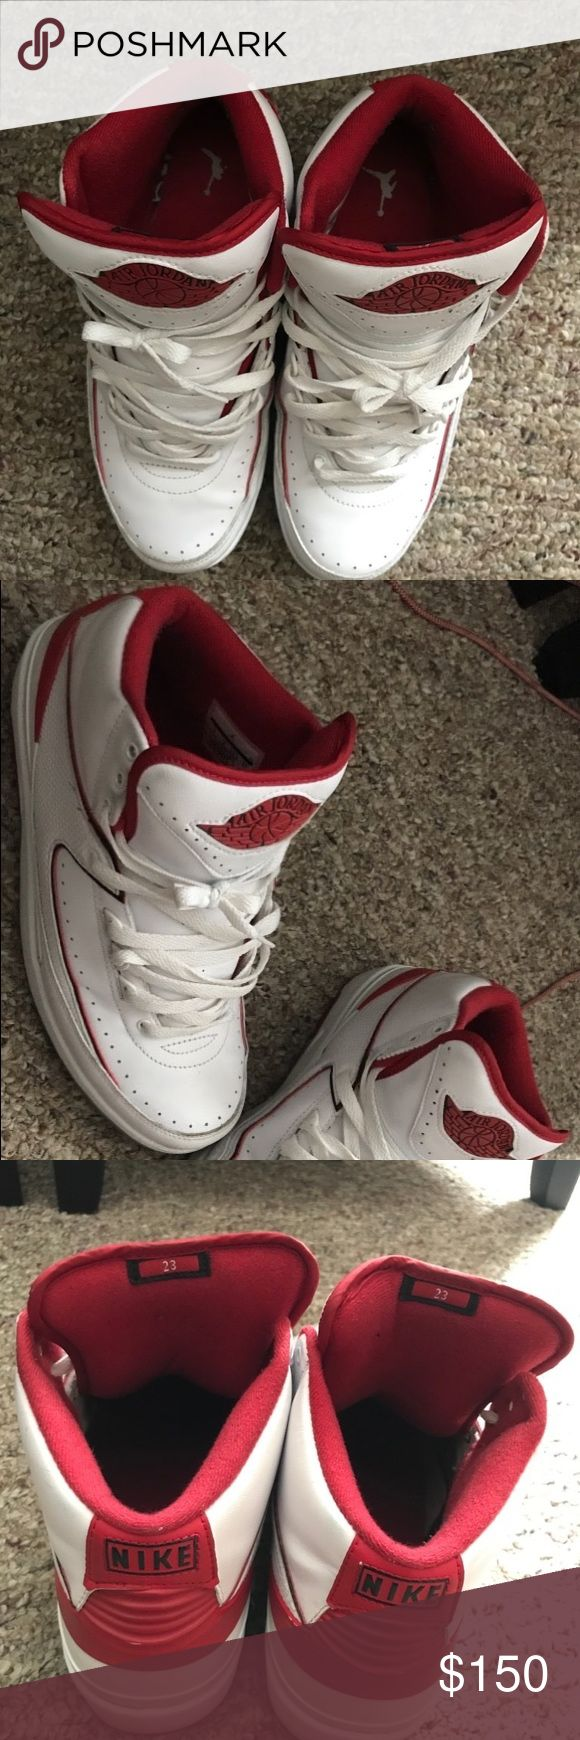 Jordan Retro 2 Worn only 3 time, in great condition Jordan Shoes Sneakers